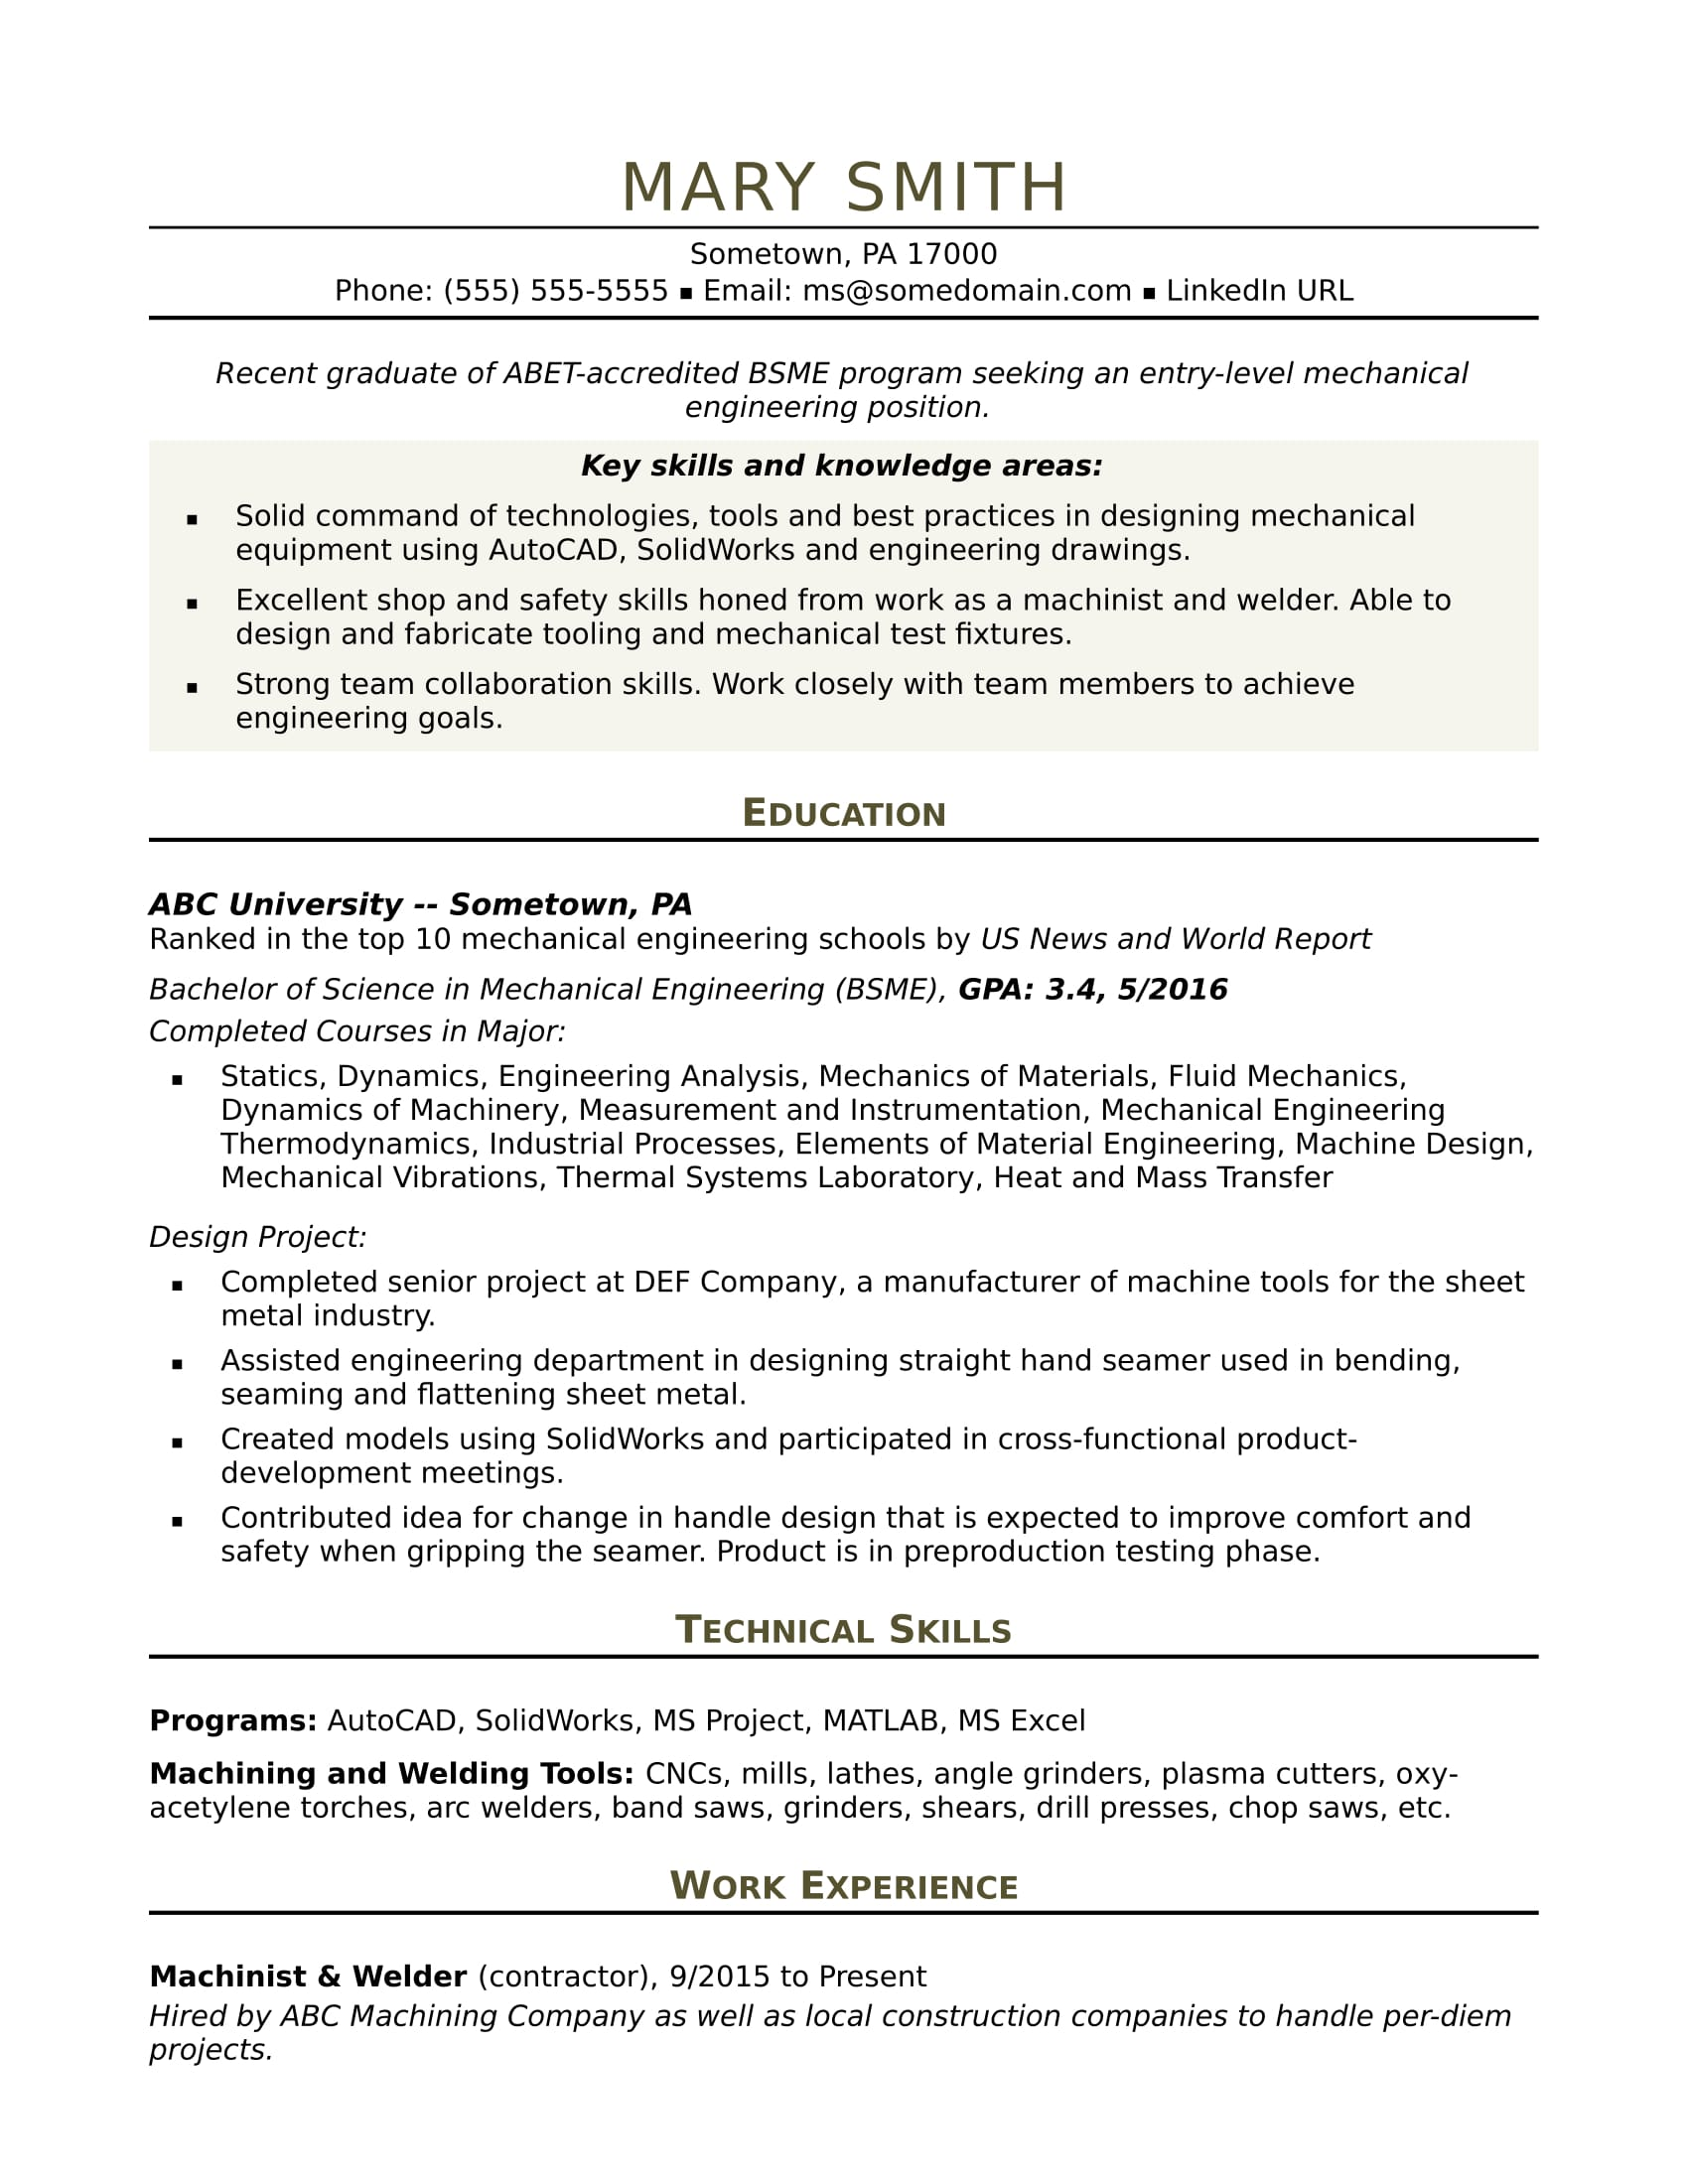 sample resume for an entry level mechanical engineer monster engineering call center job Resume Entry Level Engineering Resume